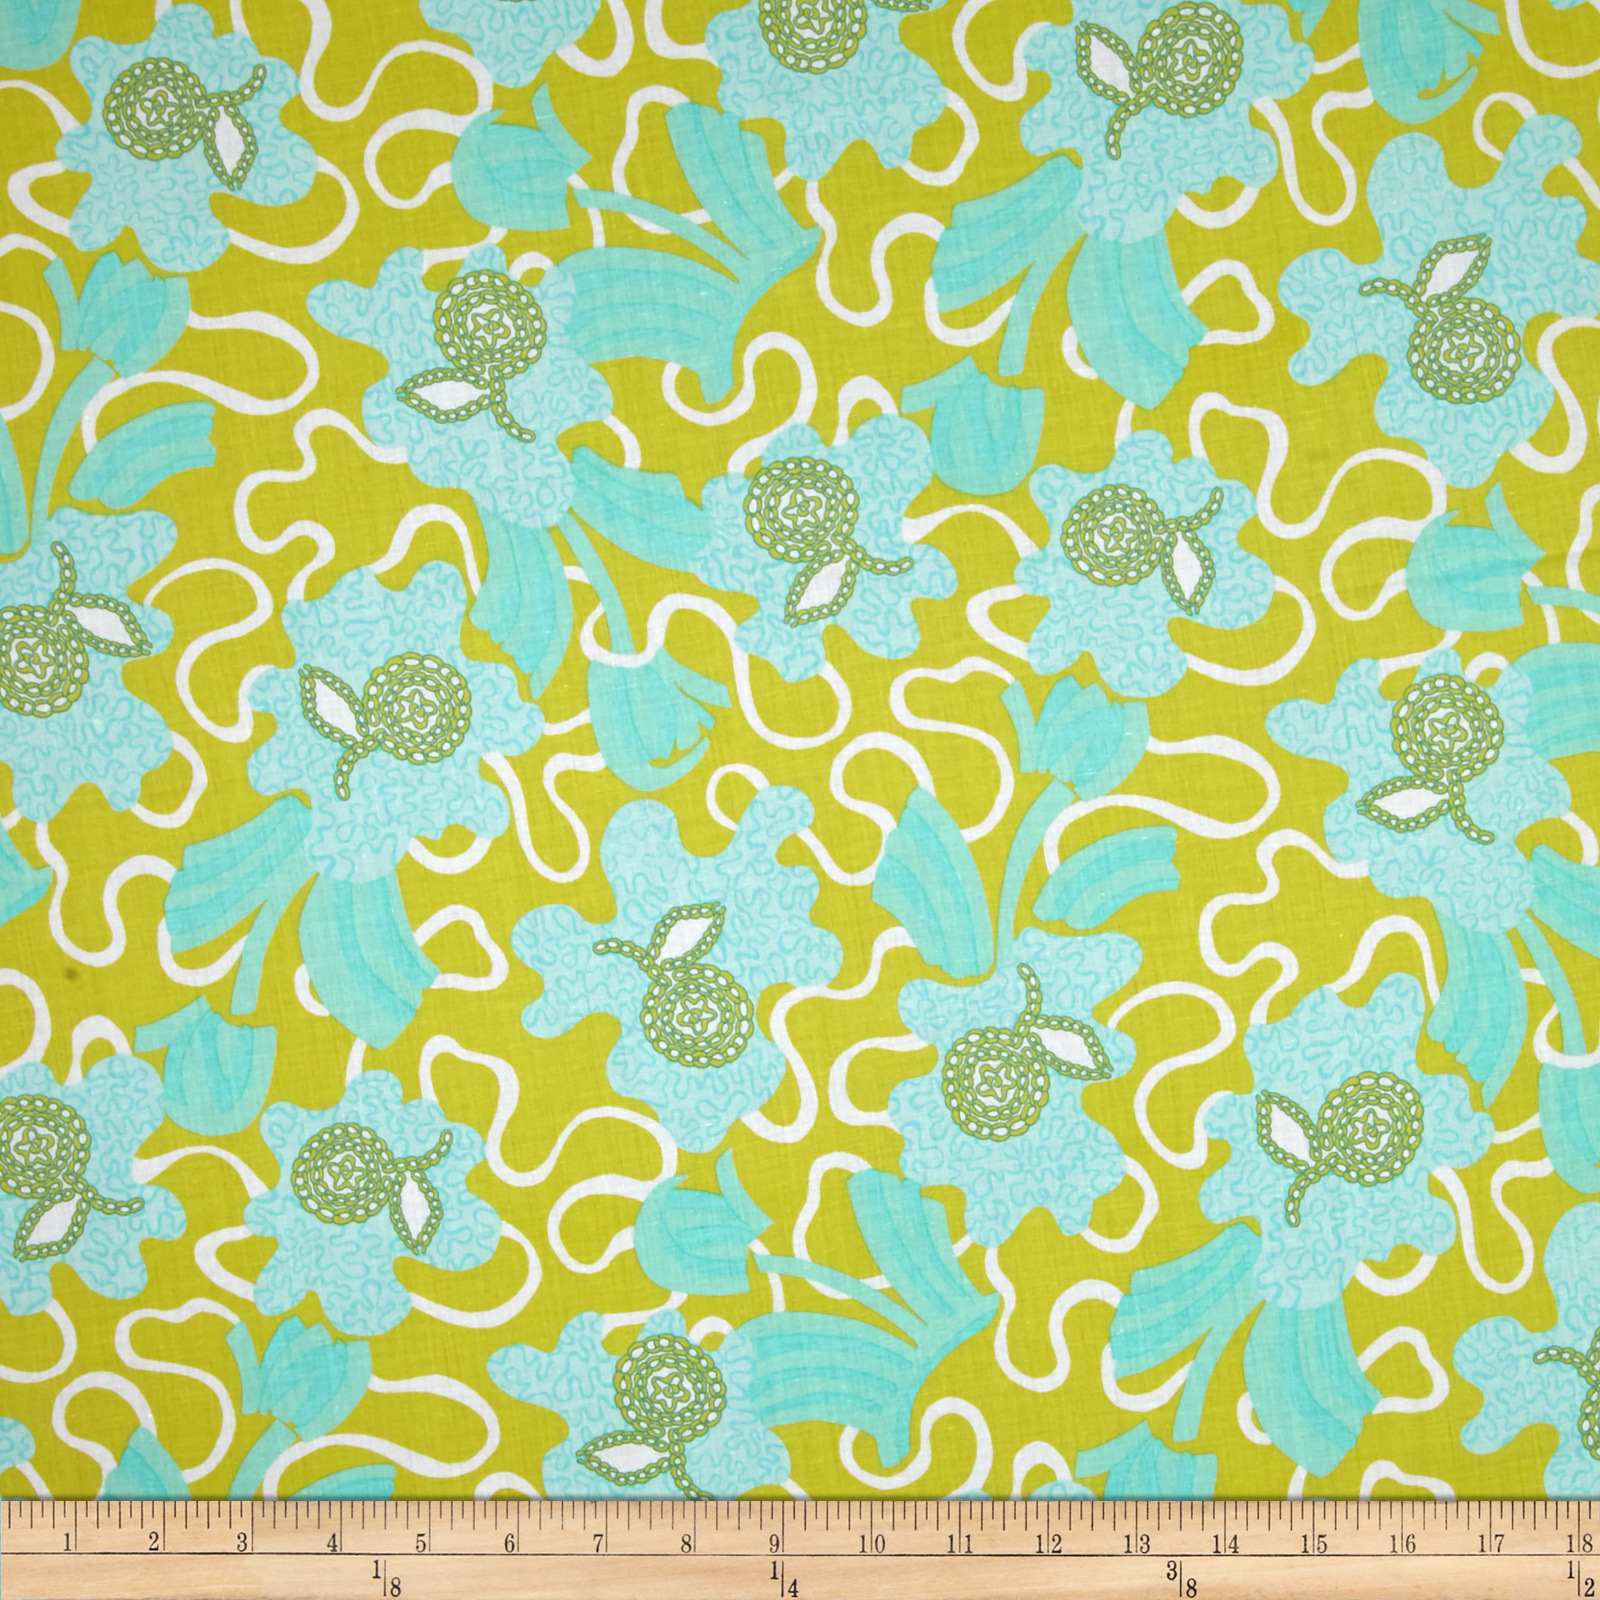 Zandra Rhodes Flower Garden Voile Flowers and Clouds Teal Fabric by Westminster in USA